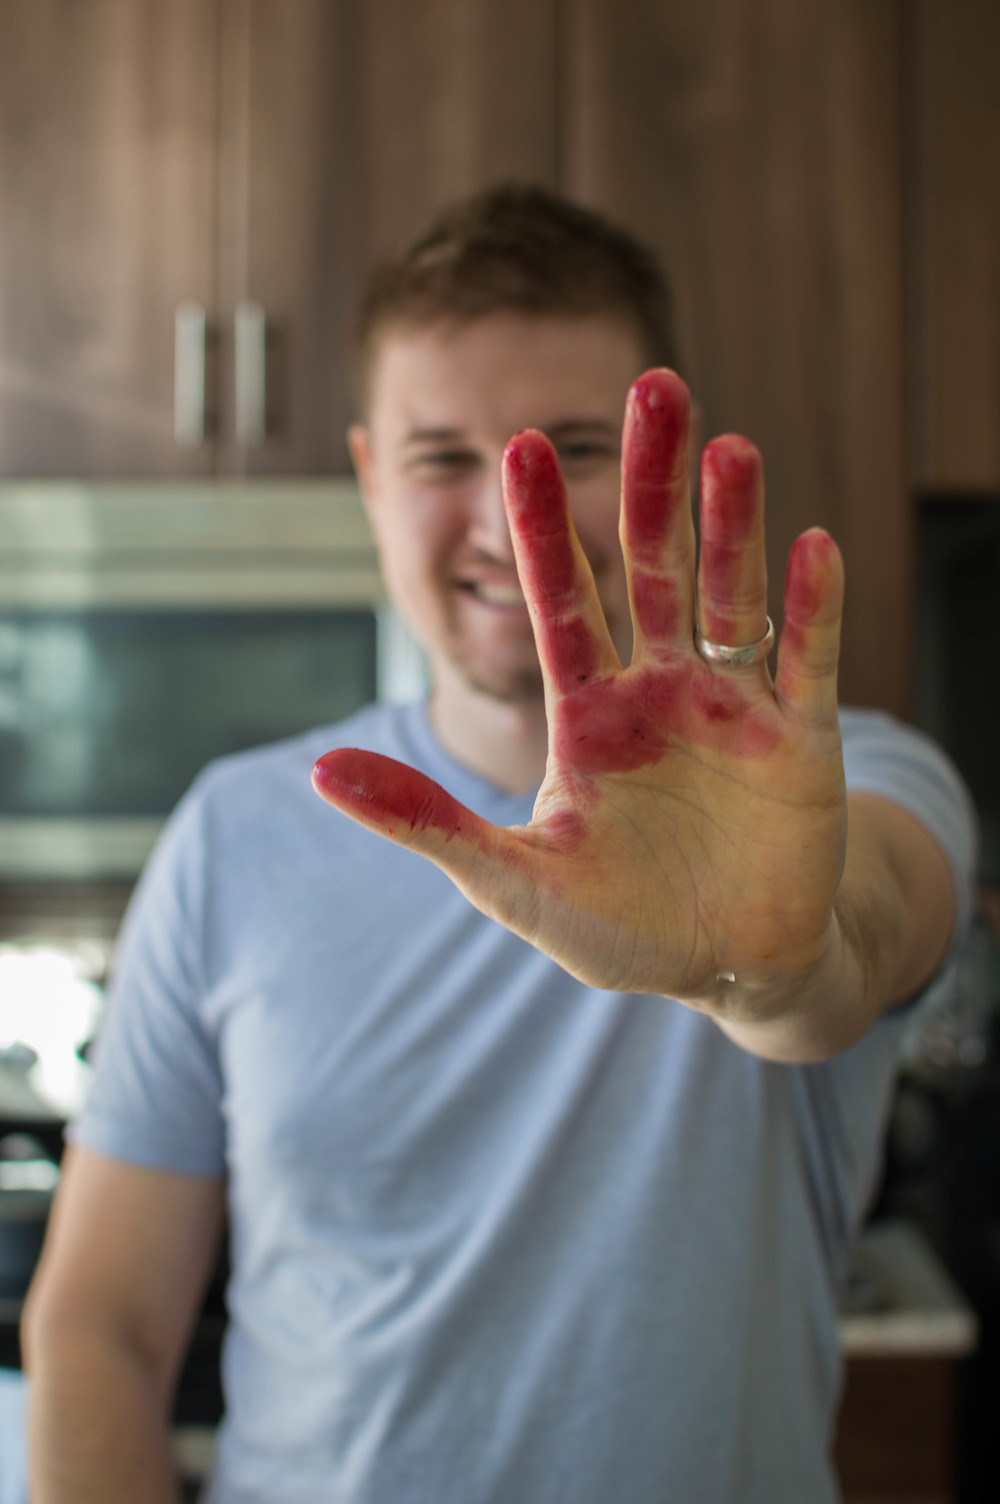 Beet juice on Rob's hands makes this picture a little creepy but it's my favorite one from Thanksgiving!